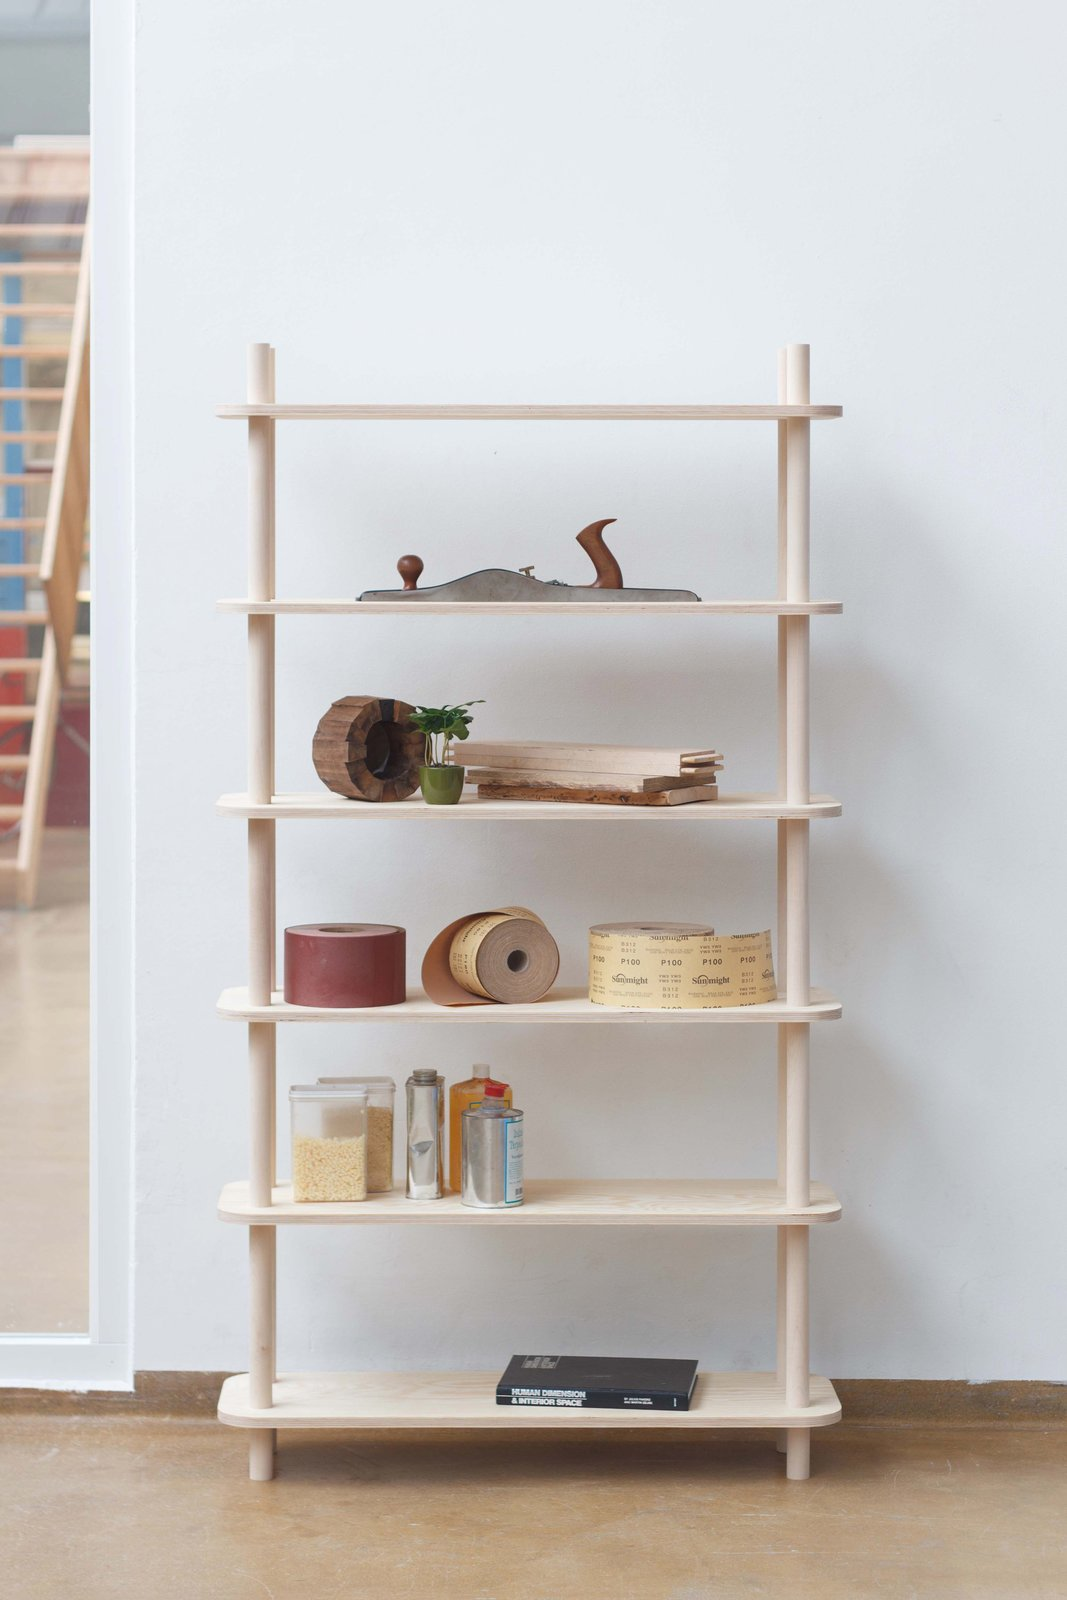 Photo 4 of 5 in TS1 Modular Shelving System